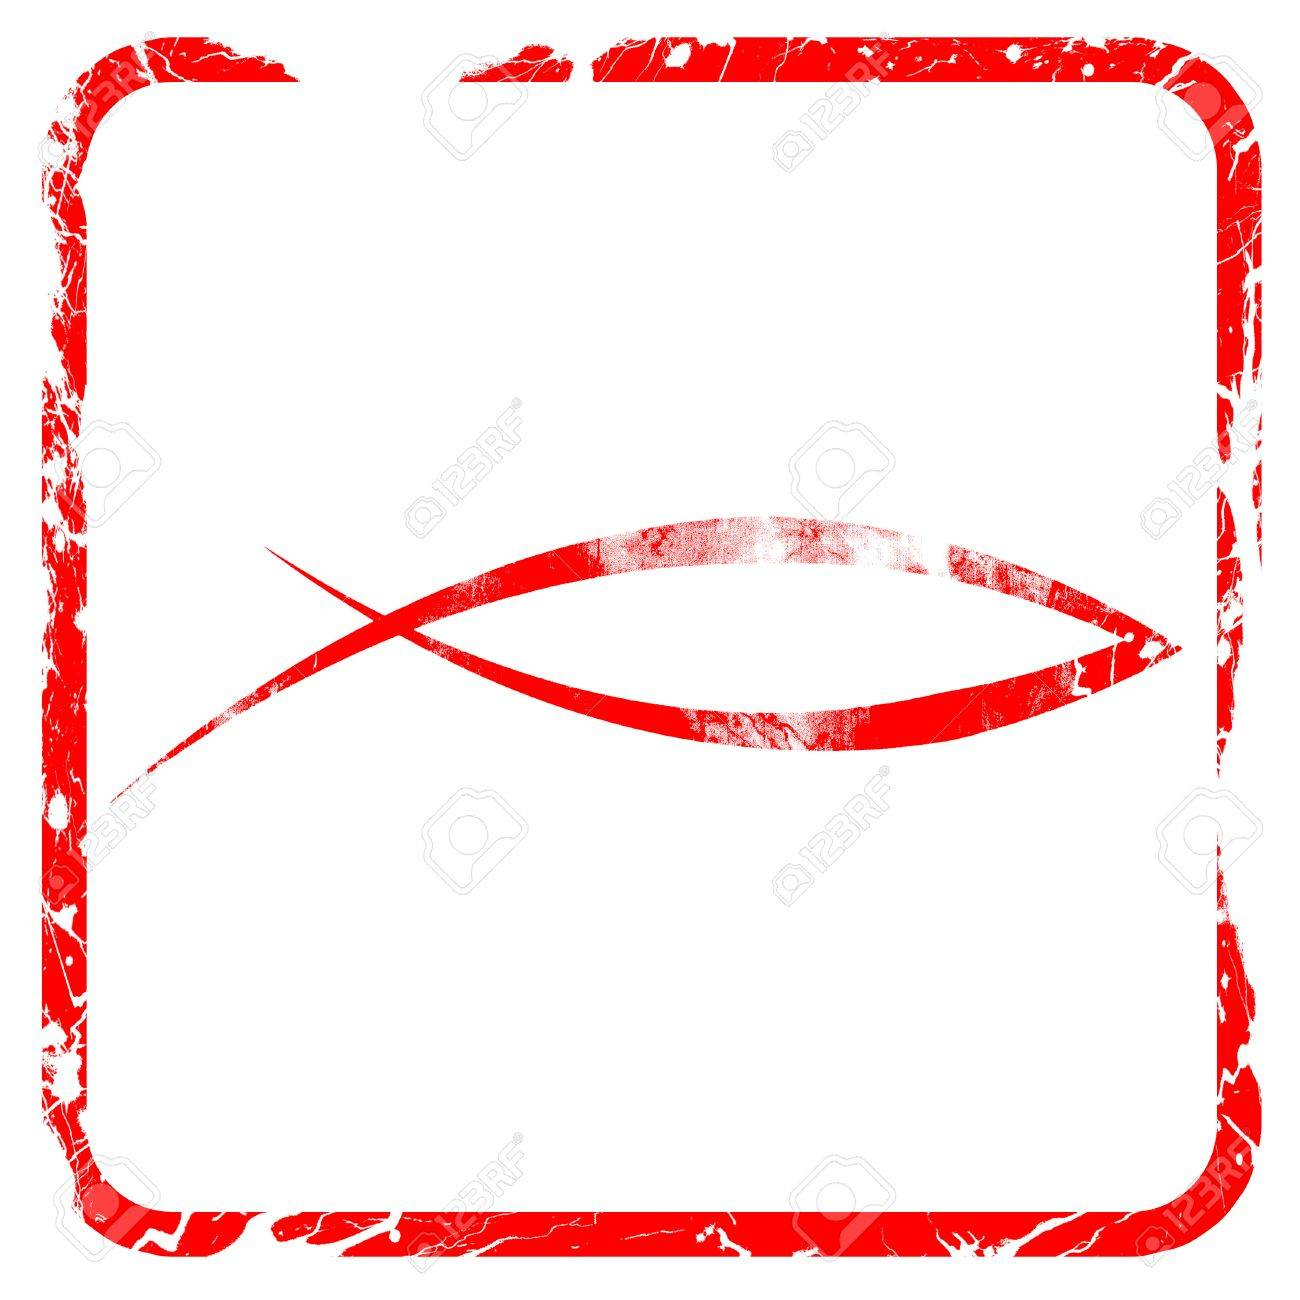 Christian fish symbol with some soft smooth lines red rubber christian fish symbol with some soft smooth lines red rubber stamp with grunge edges stock buycottarizona Gallery